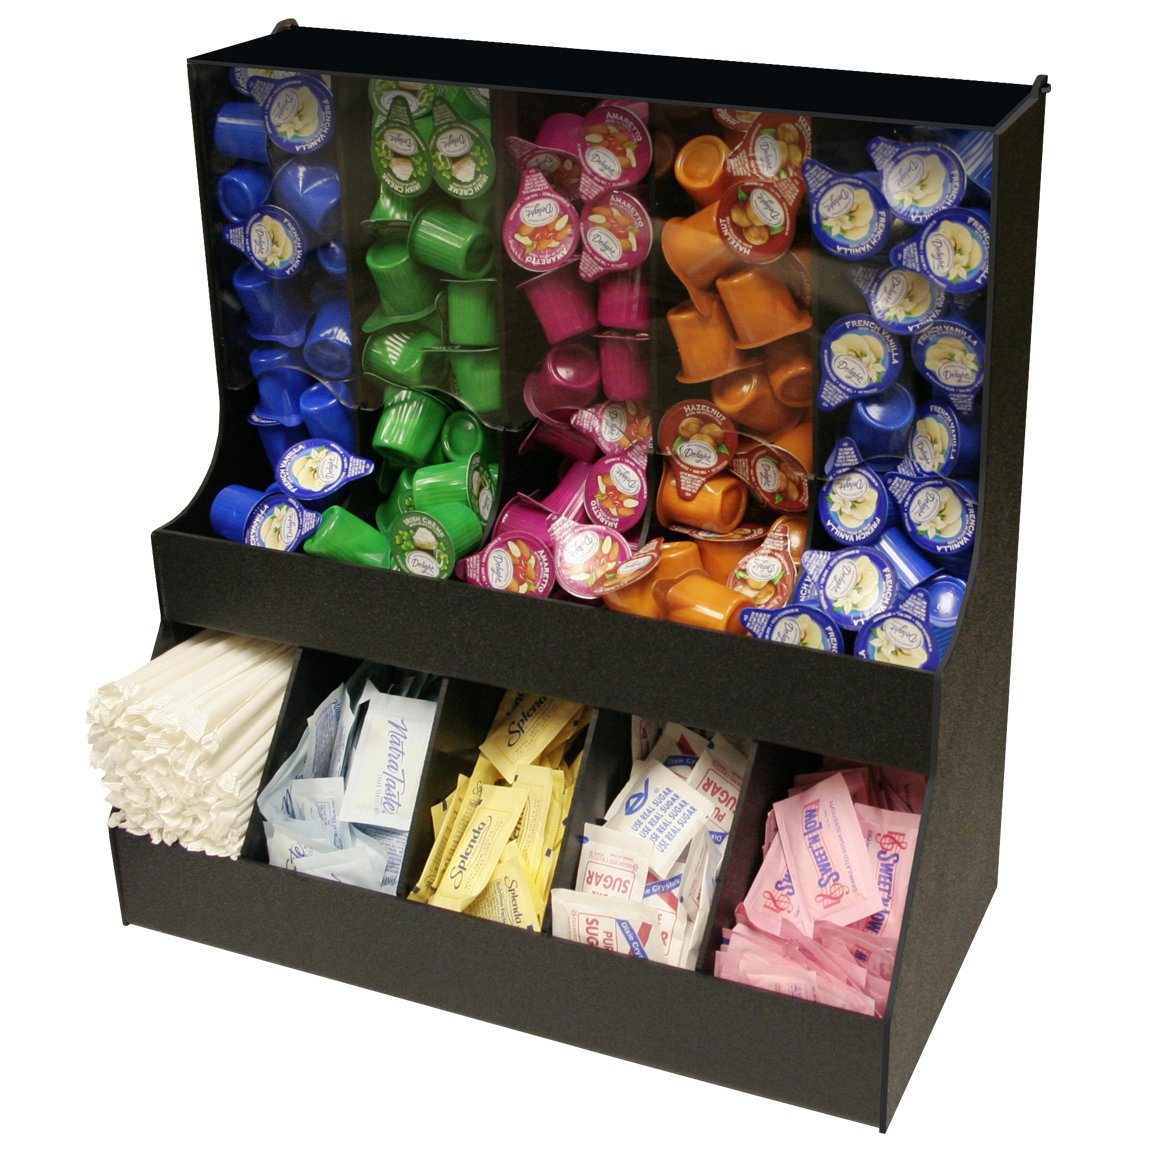 Large Professional Coffee Condiment Organizer 18'' Wide, with 5 Gravity Columns with Lid & 5 Compartments for Sugars,Creamers. 18 1/2'' W x 16'' High. Made in the USA! by PPM.